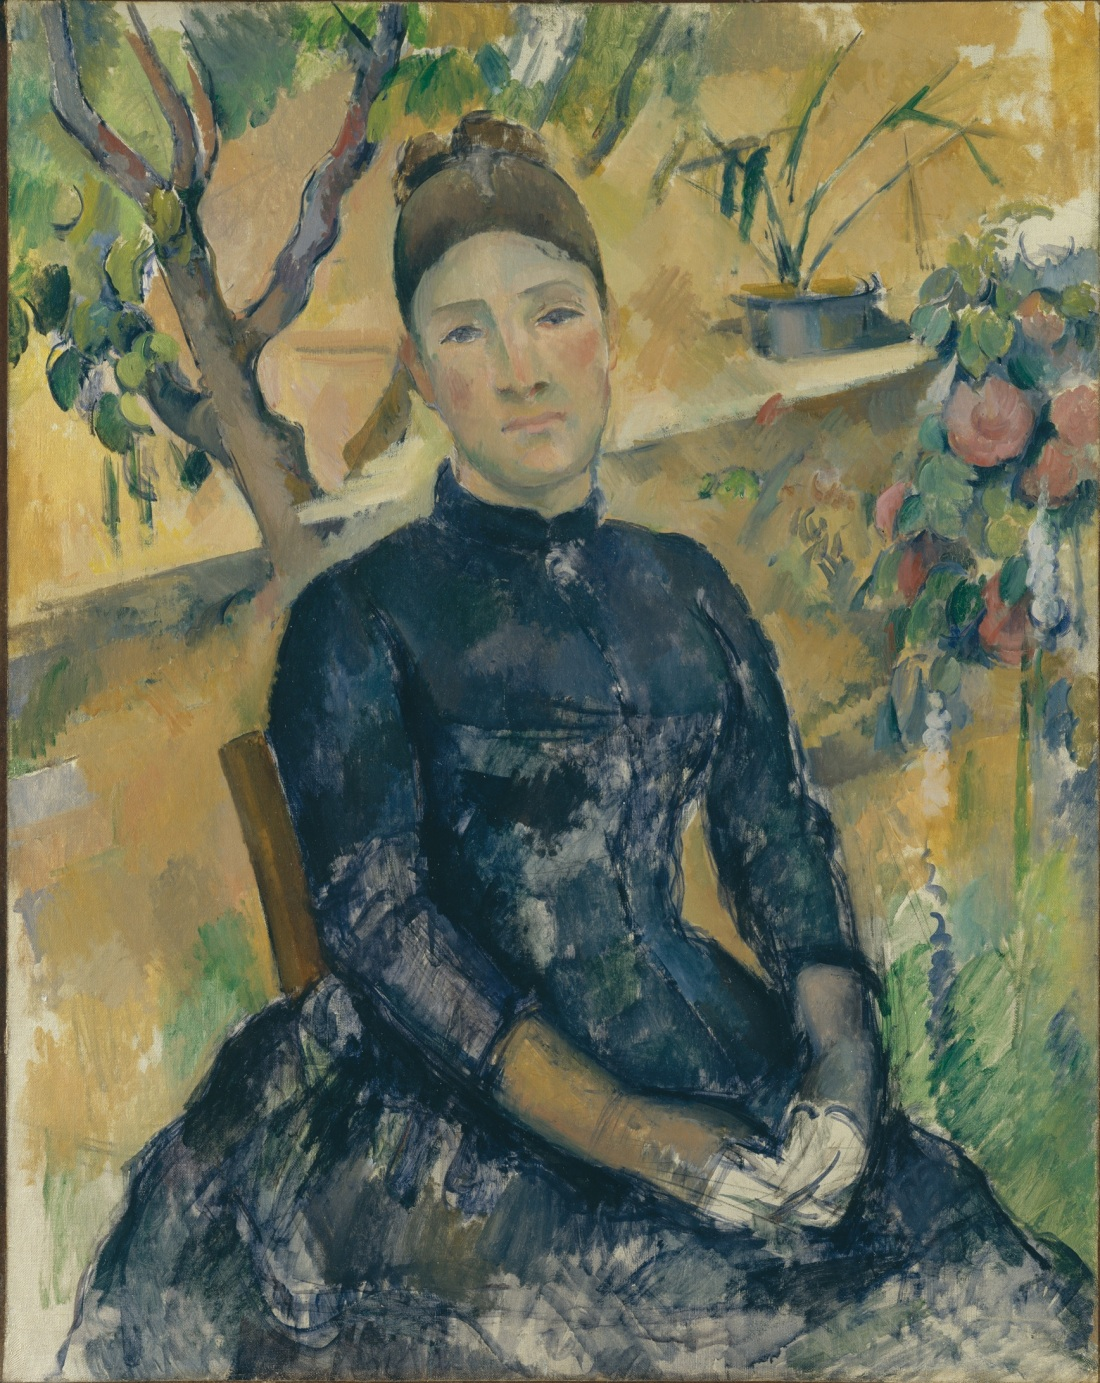 Paul Cezanne, Madame Cezanne in the Conservatory, 1891. Collection of the Metropolitan Museum of Art, New York.